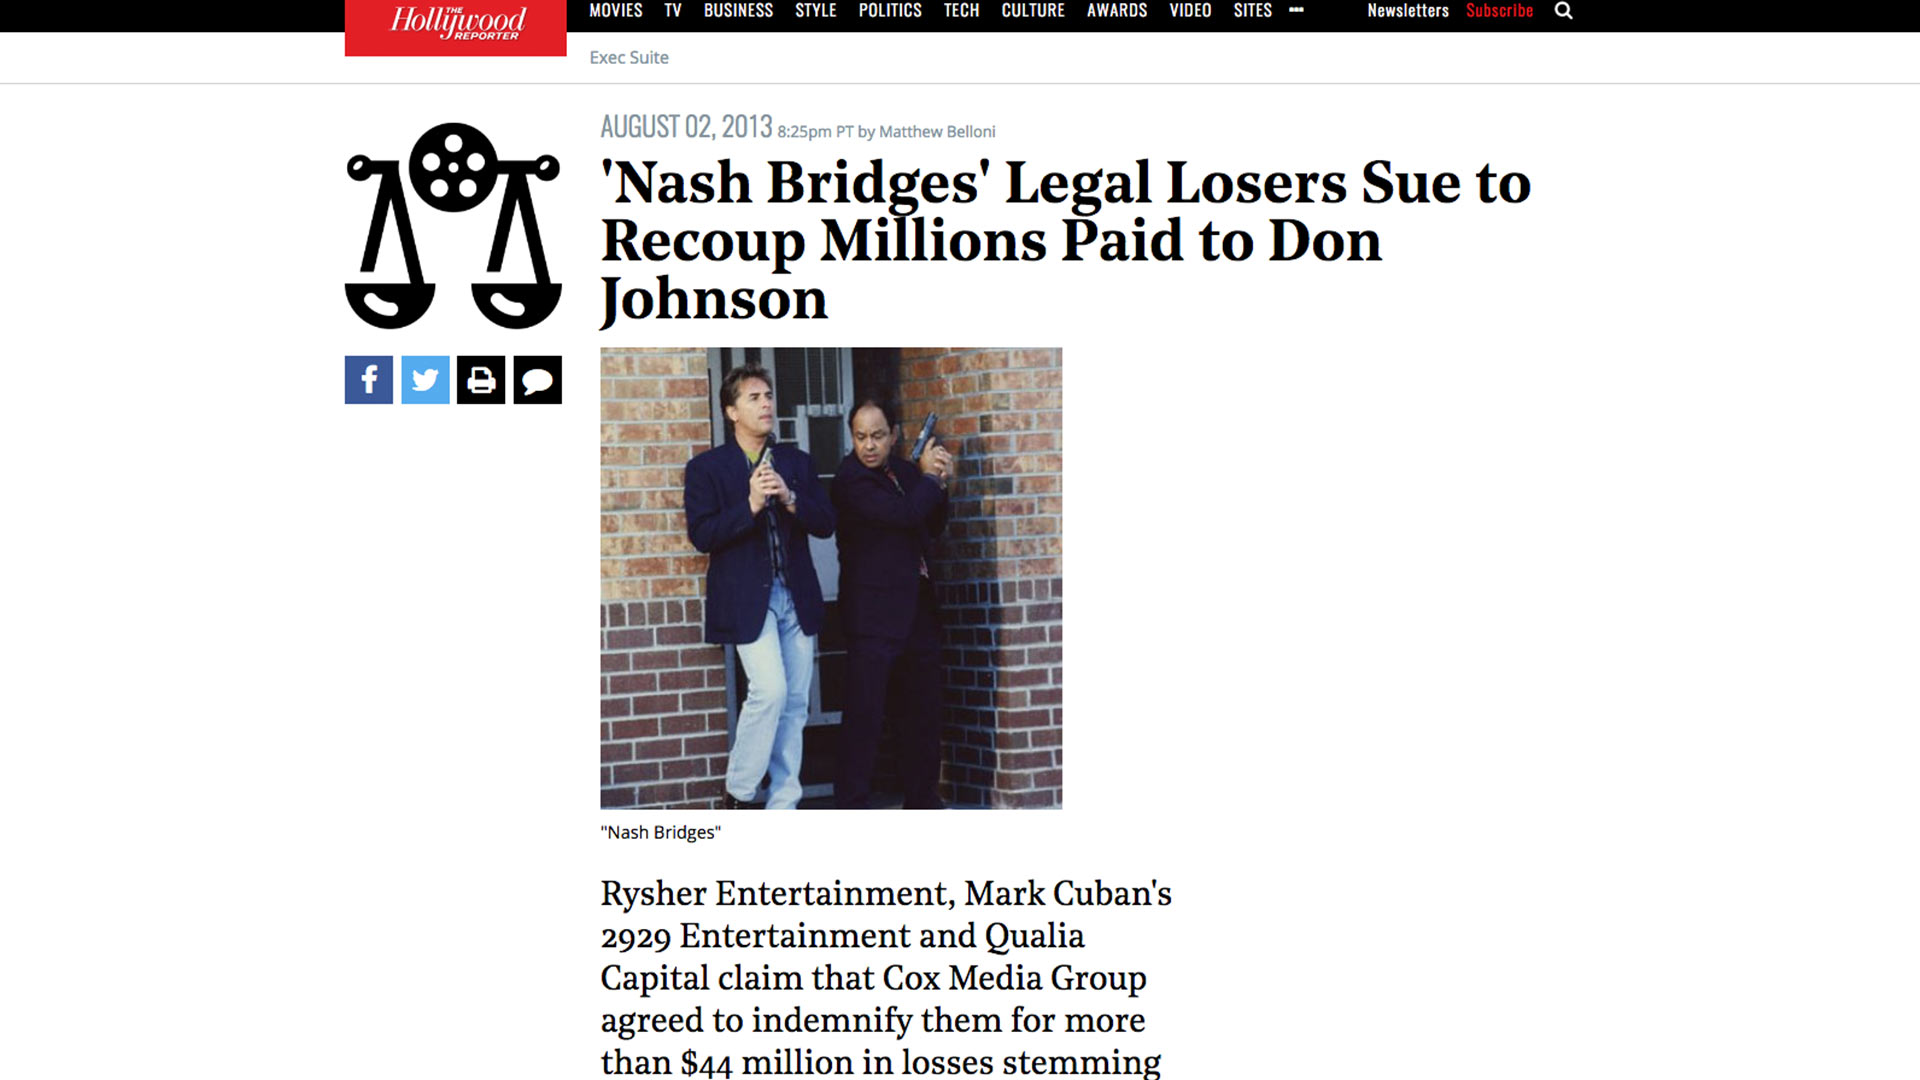 Fairness Rocks News 'Nash Bridges' Legal Losers Sue to Recoup Millions Paid to Don Johnson